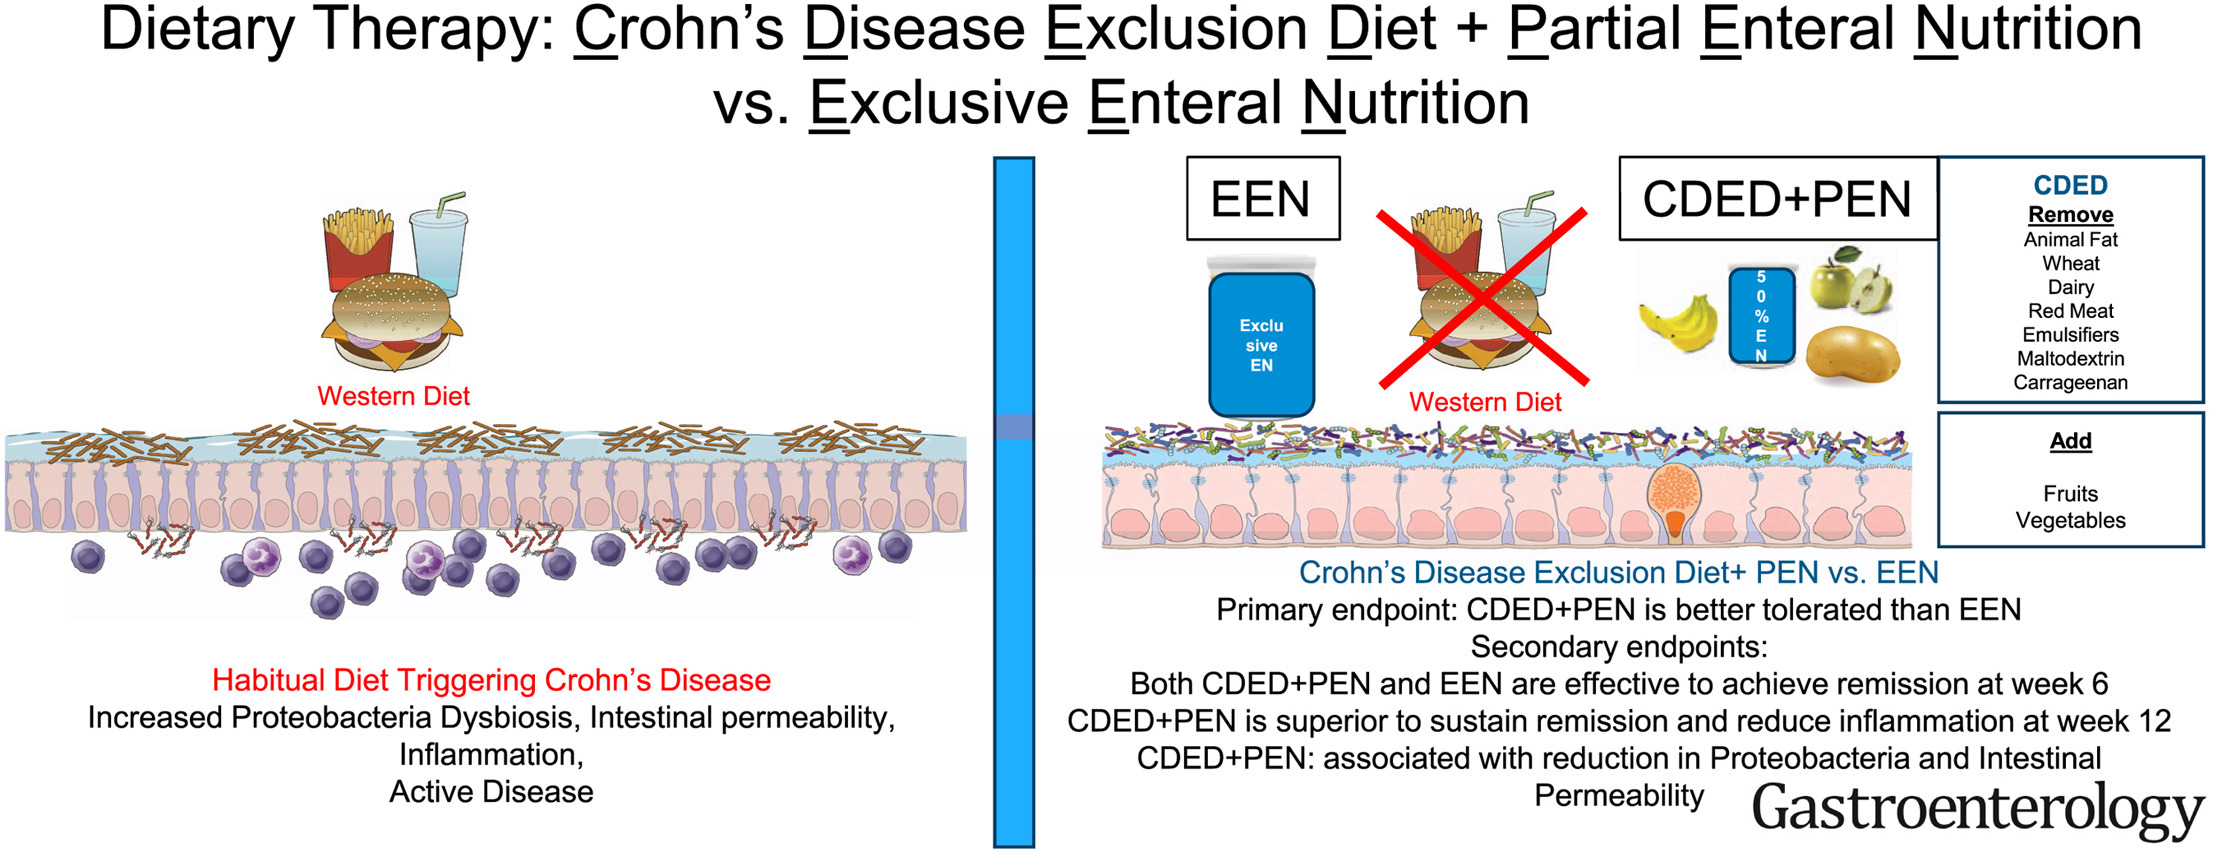 Crohn S Disease Exclusiont Plus Partial Enteral